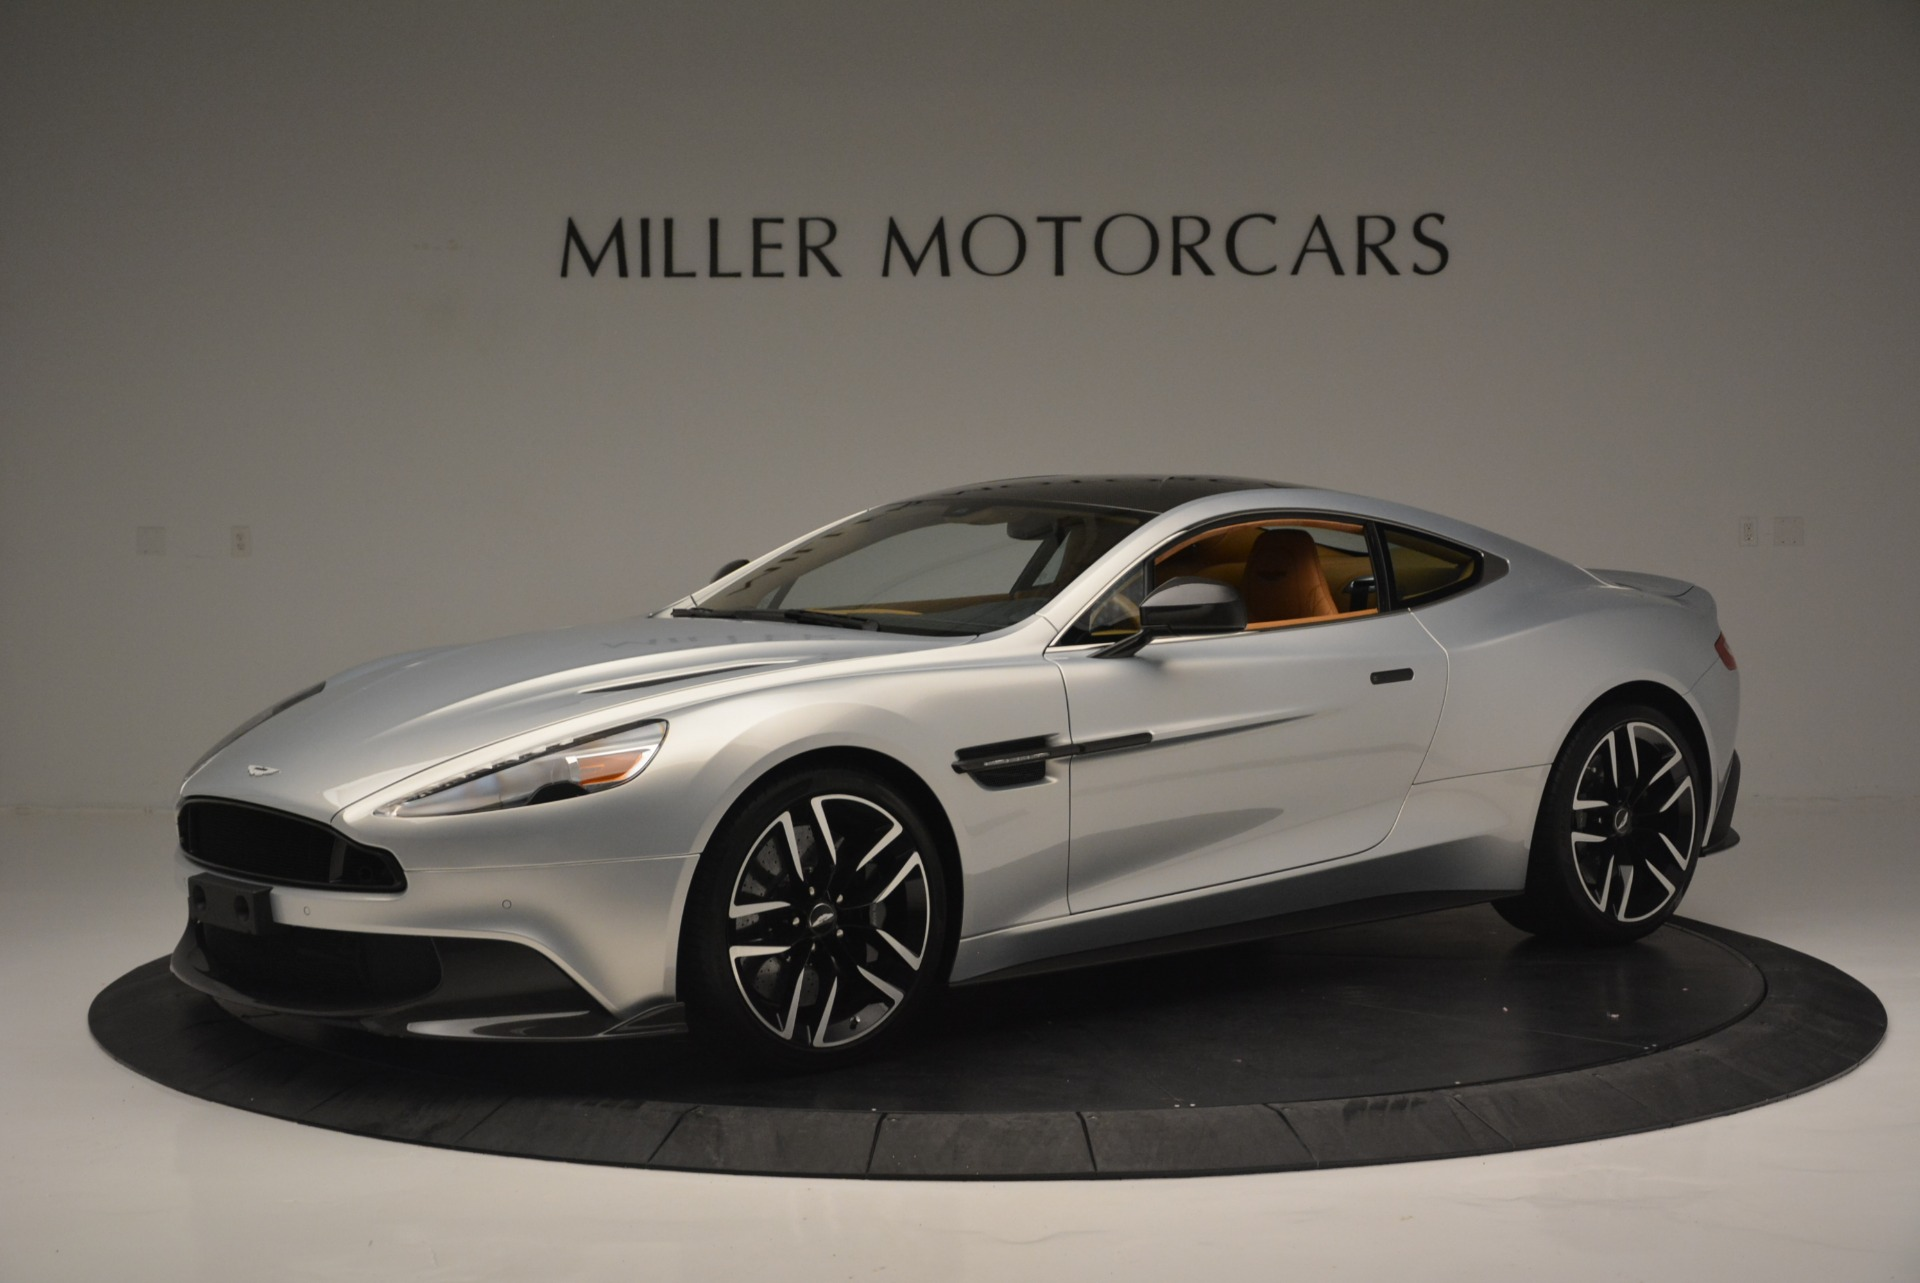 Used 2018 Aston Martin Vanquish S Coupe for sale Sold at Rolls-Royce Motor Cars Greenwich in Greenwich CT 06830 1